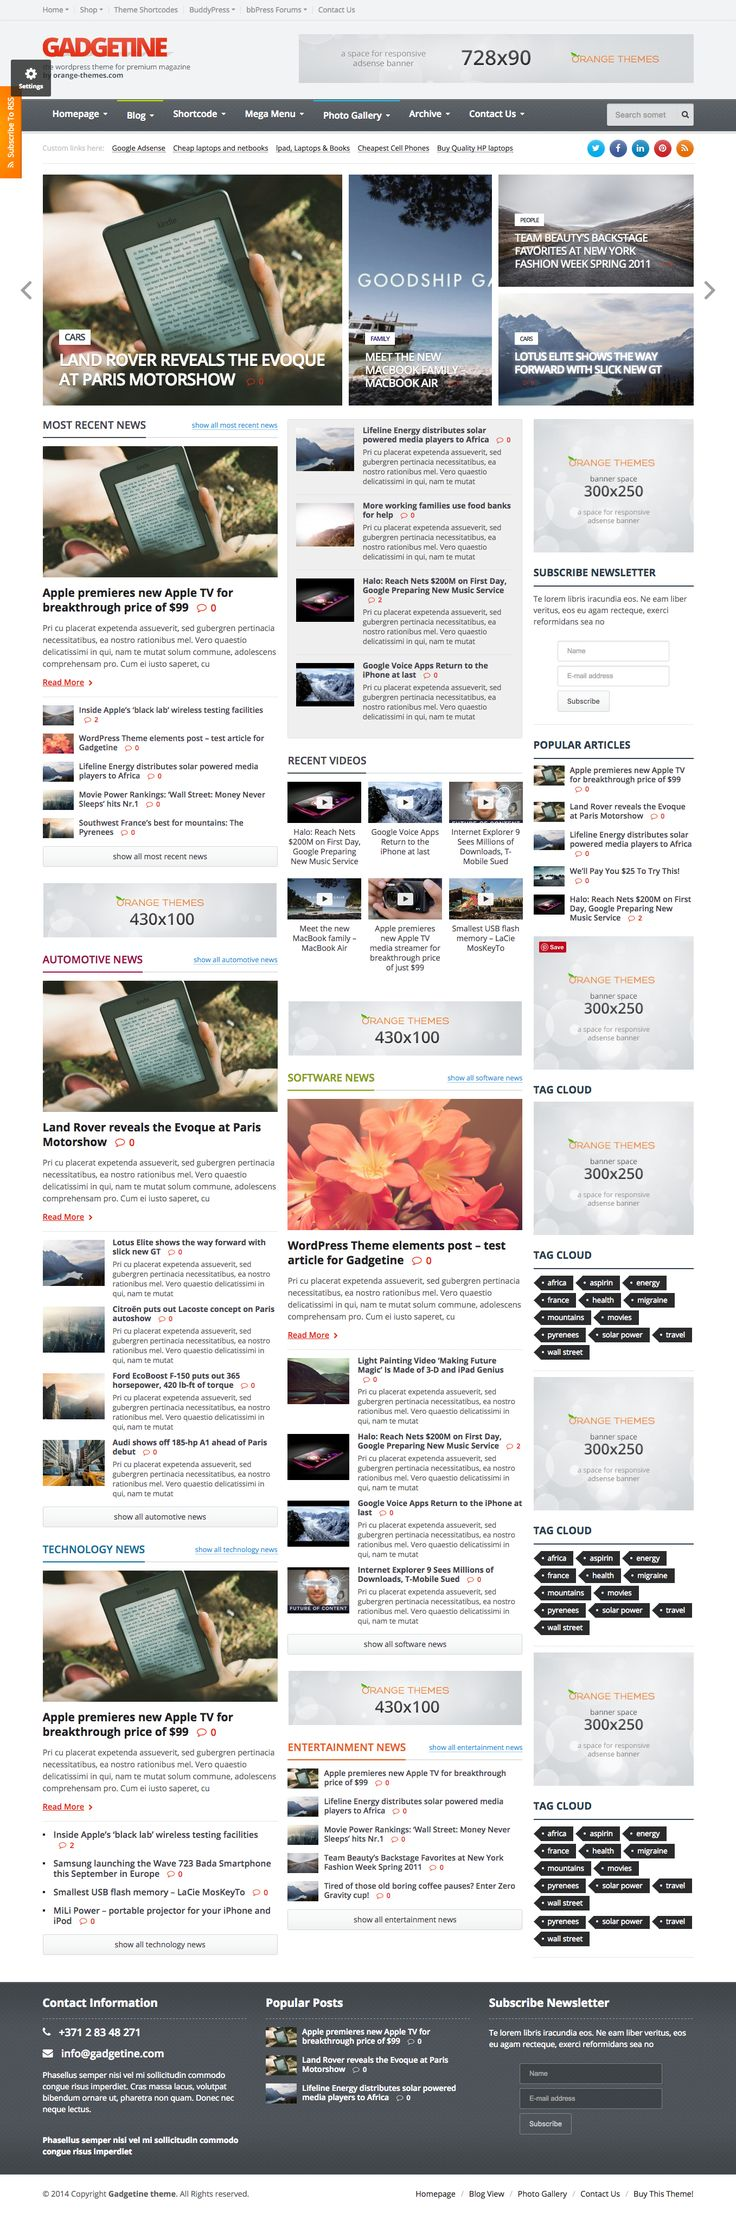 Gadgetine is premium blog magazine theme that will also work well for a serious news portal. The theme is very friendly for affiliate marketers or just regular bloggers who wish to monetize their hobby.